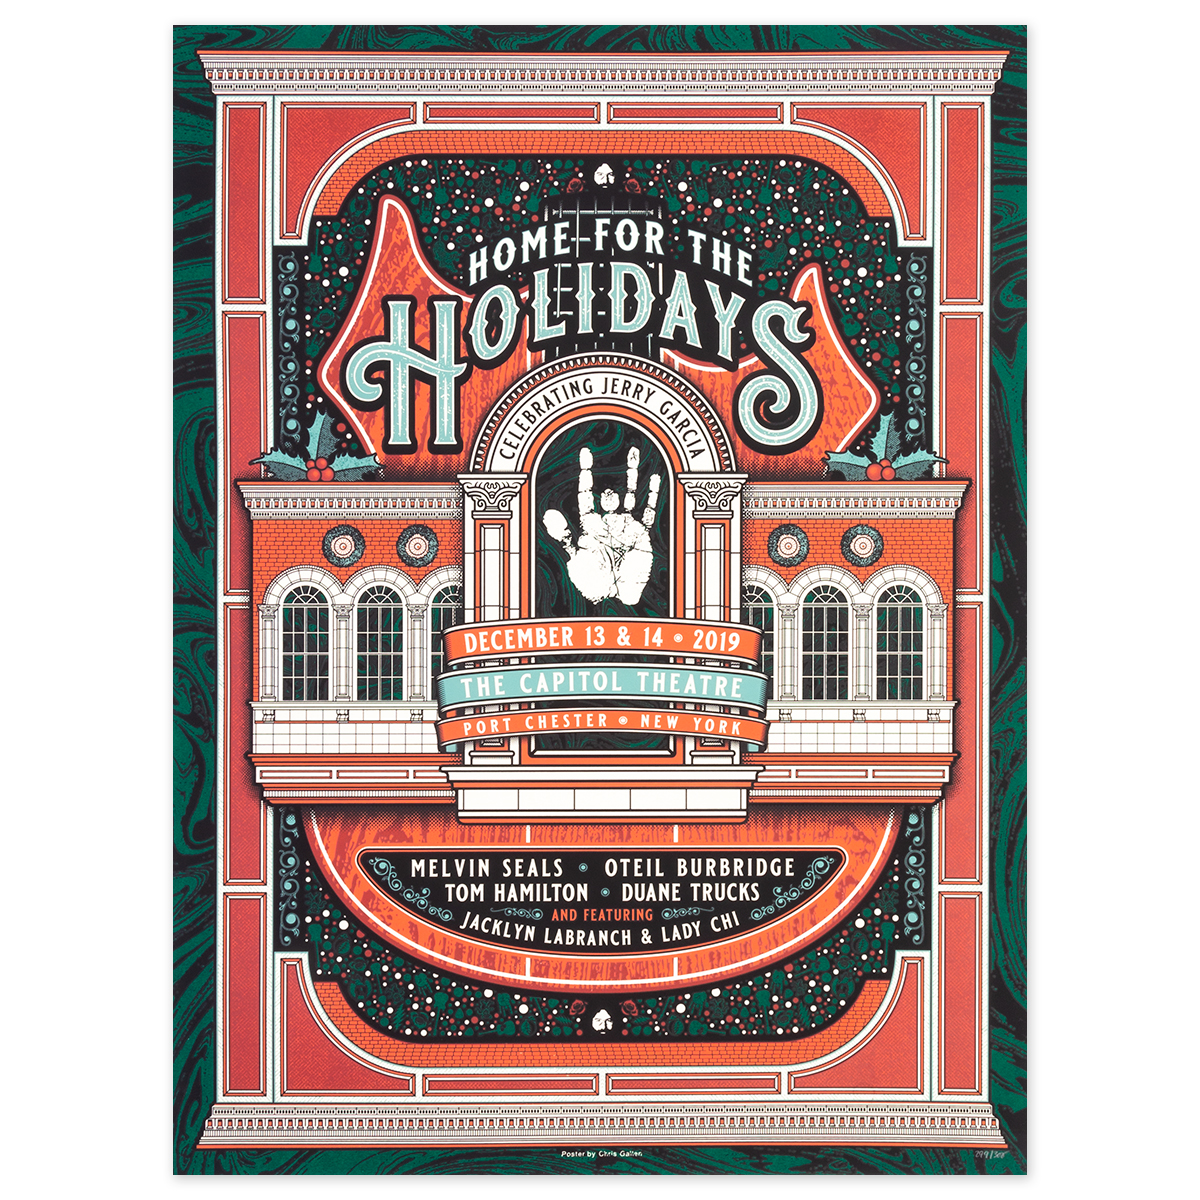 Home For The Holidays Event Poster